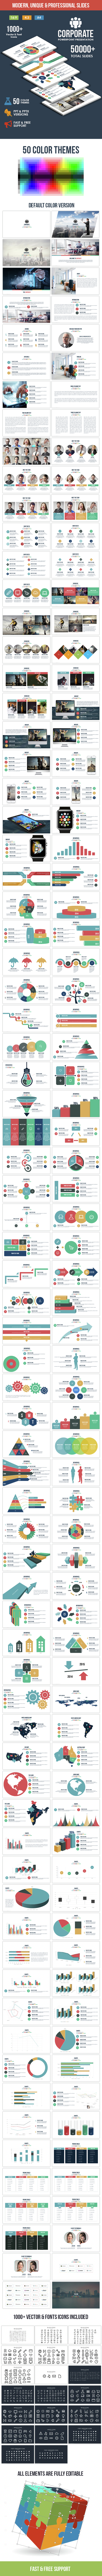 Corporate - Multipurpose PowerPoint Template - Business PowerPoint Templates